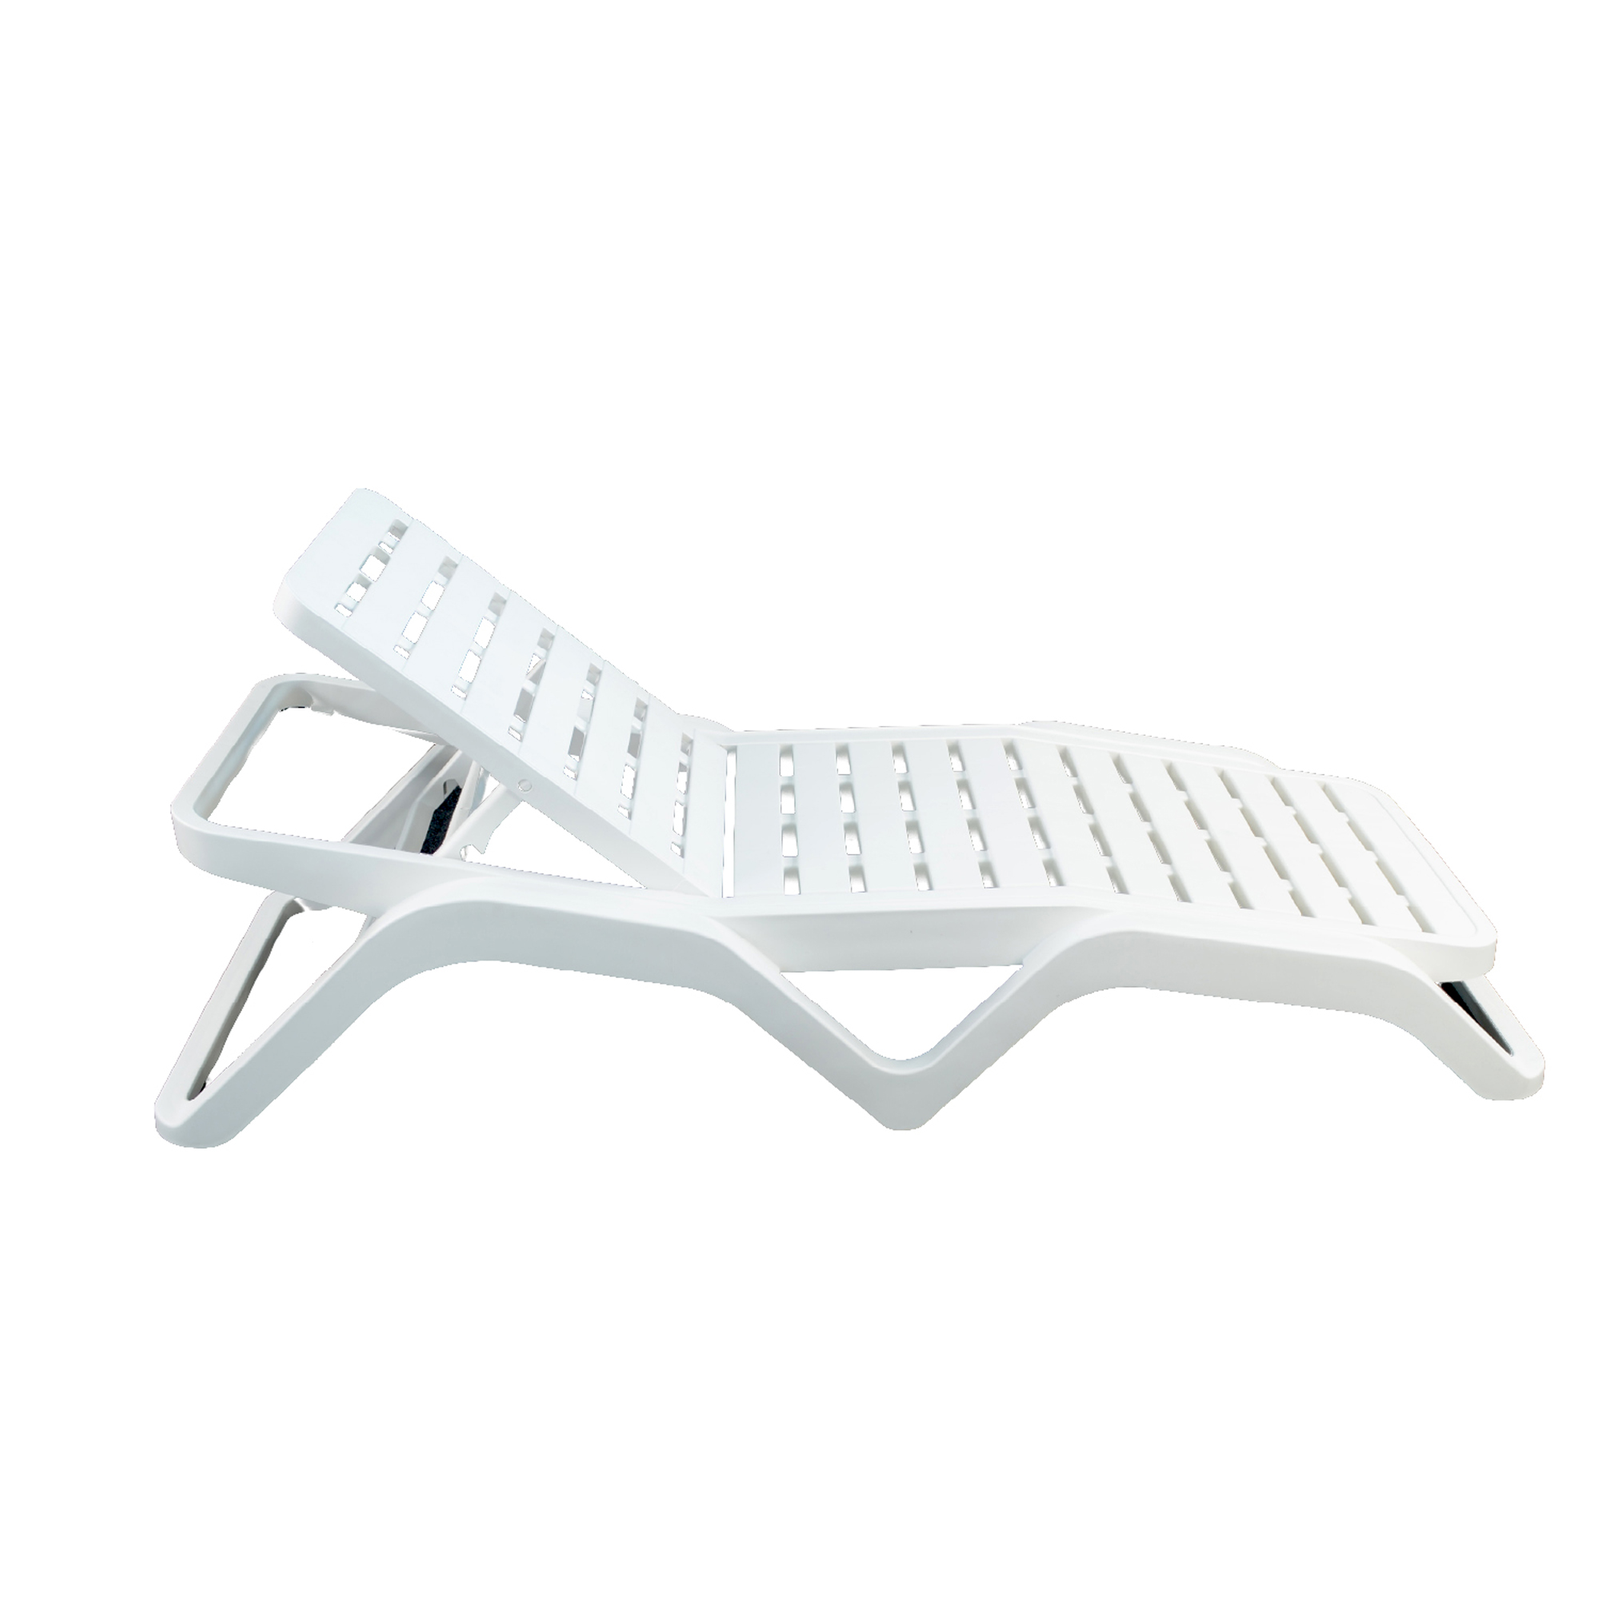 Trabella Scirocco Sun Lounger pack of 2 in White